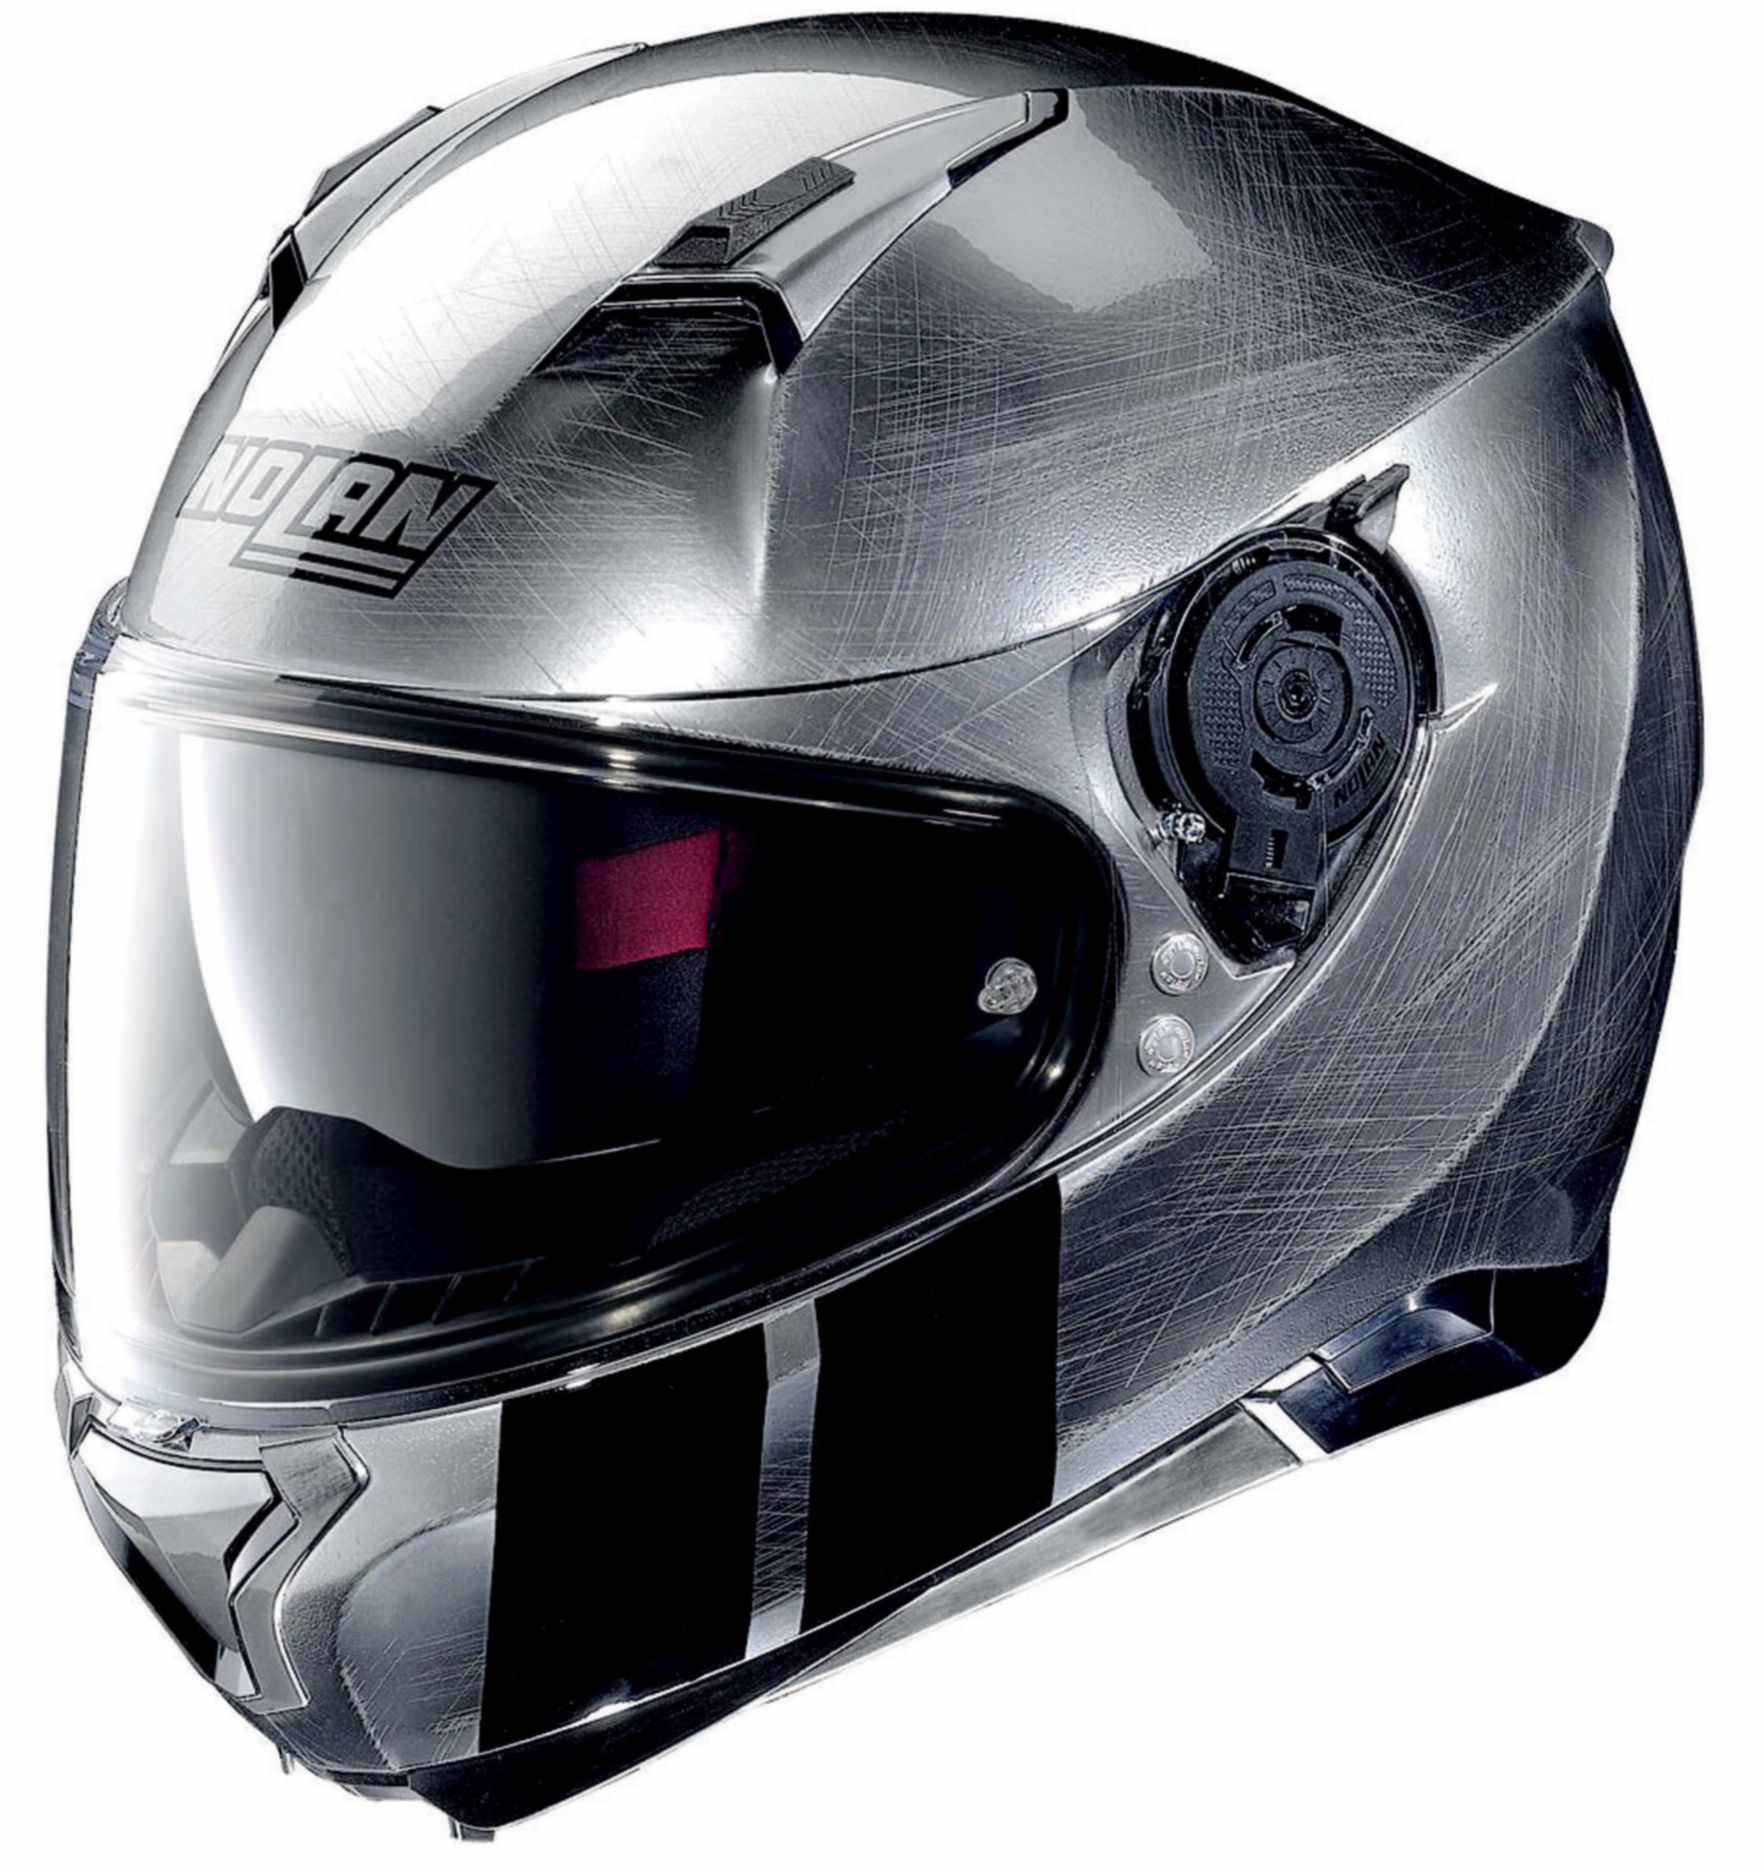 nolan n 87 helmet. Black Bedroom Furniture Sets. Home Design Ideas